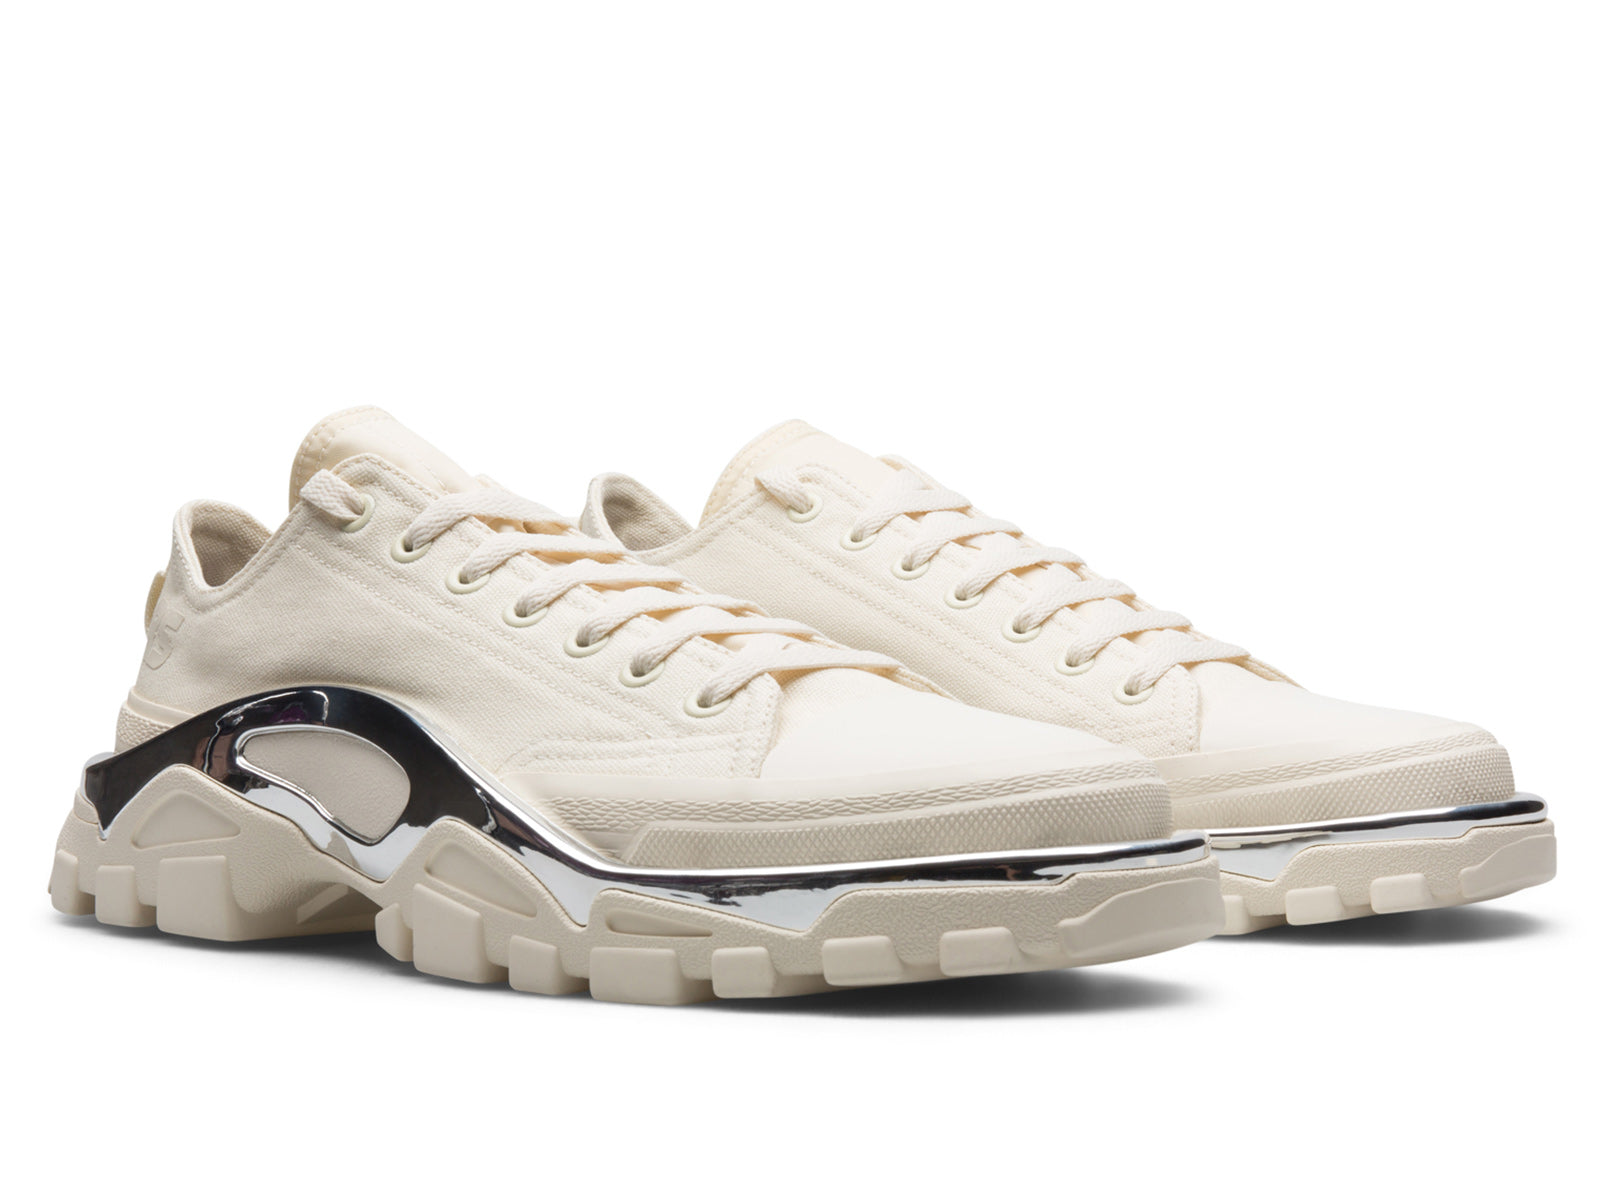 reputable site af722 87925 ... the Raf Simons Detroit Runner is a study in extreme visual contrasts. A  classic, low top, canvas court shoe serves as the base for a futuristic  tread ...